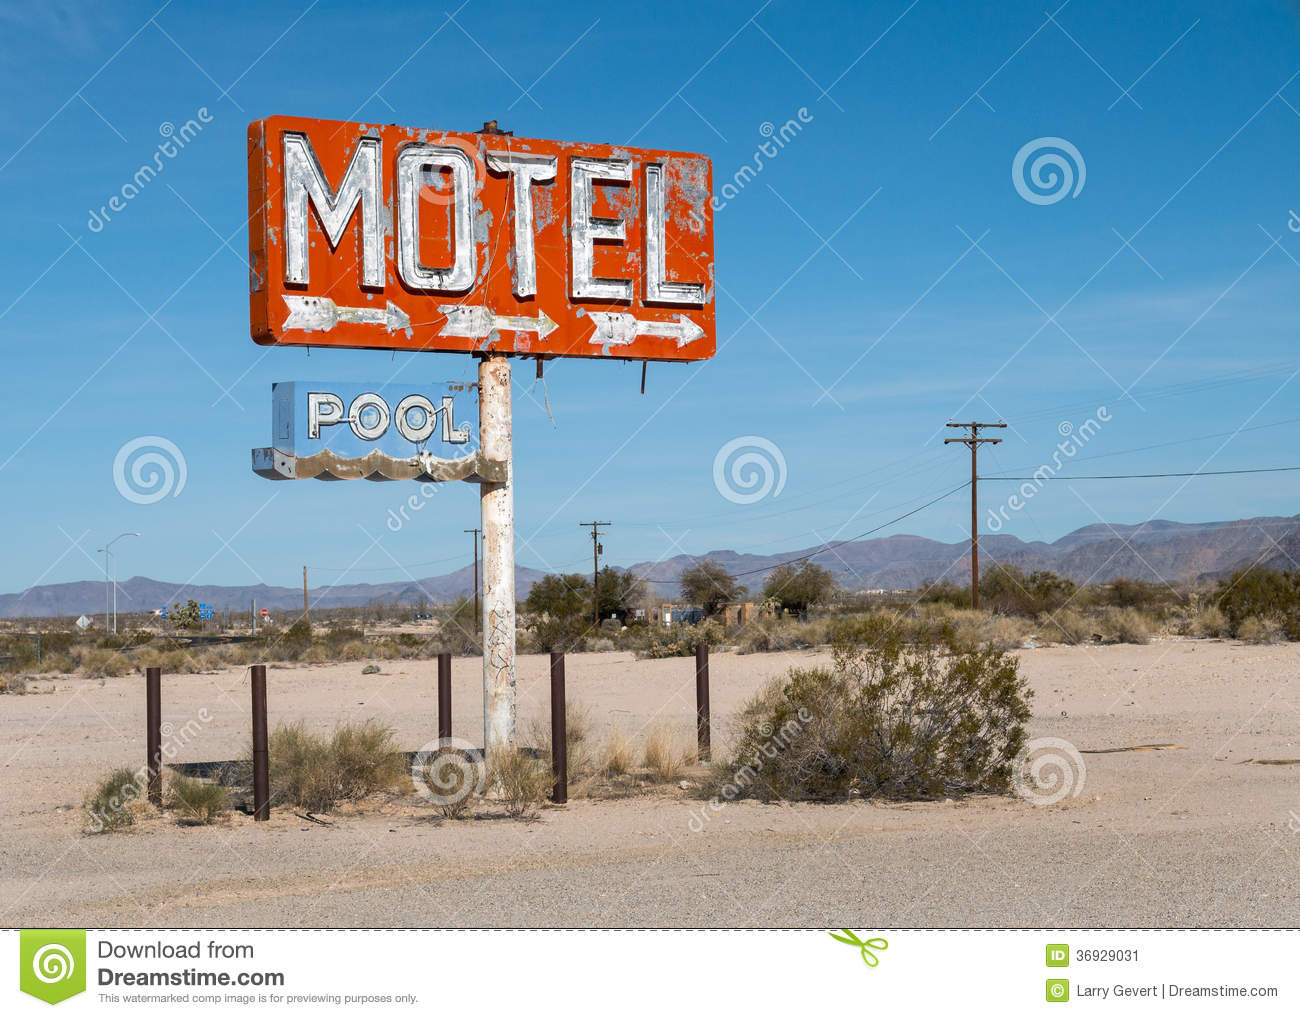 Motel Pool Abandoned Photos Free Royalty Free Stock Photos From Dreamstime